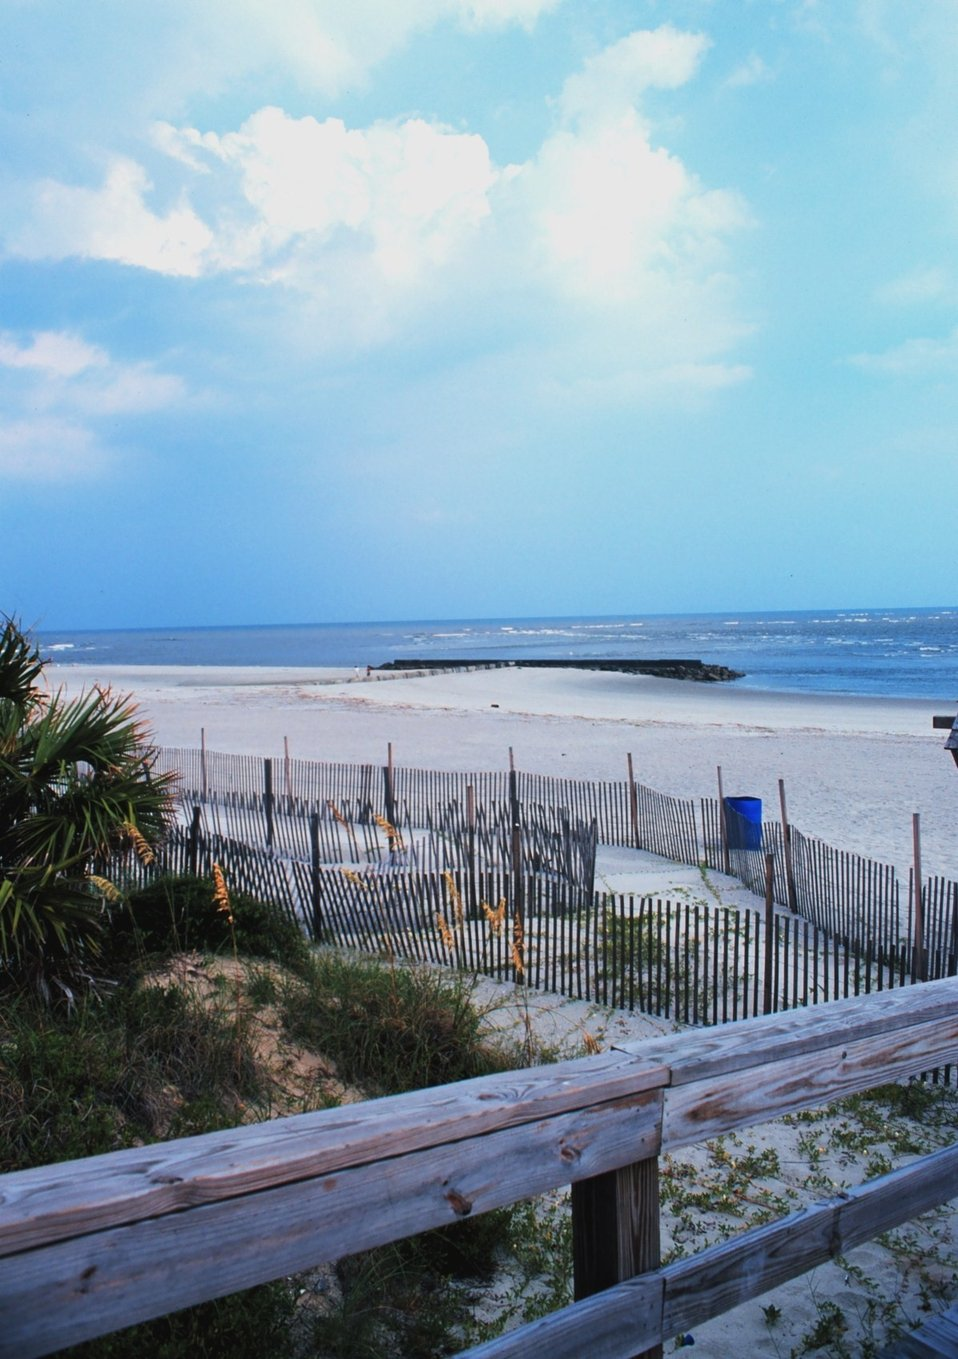 The beach at Tybee Island.  Fences help reduce erosion.